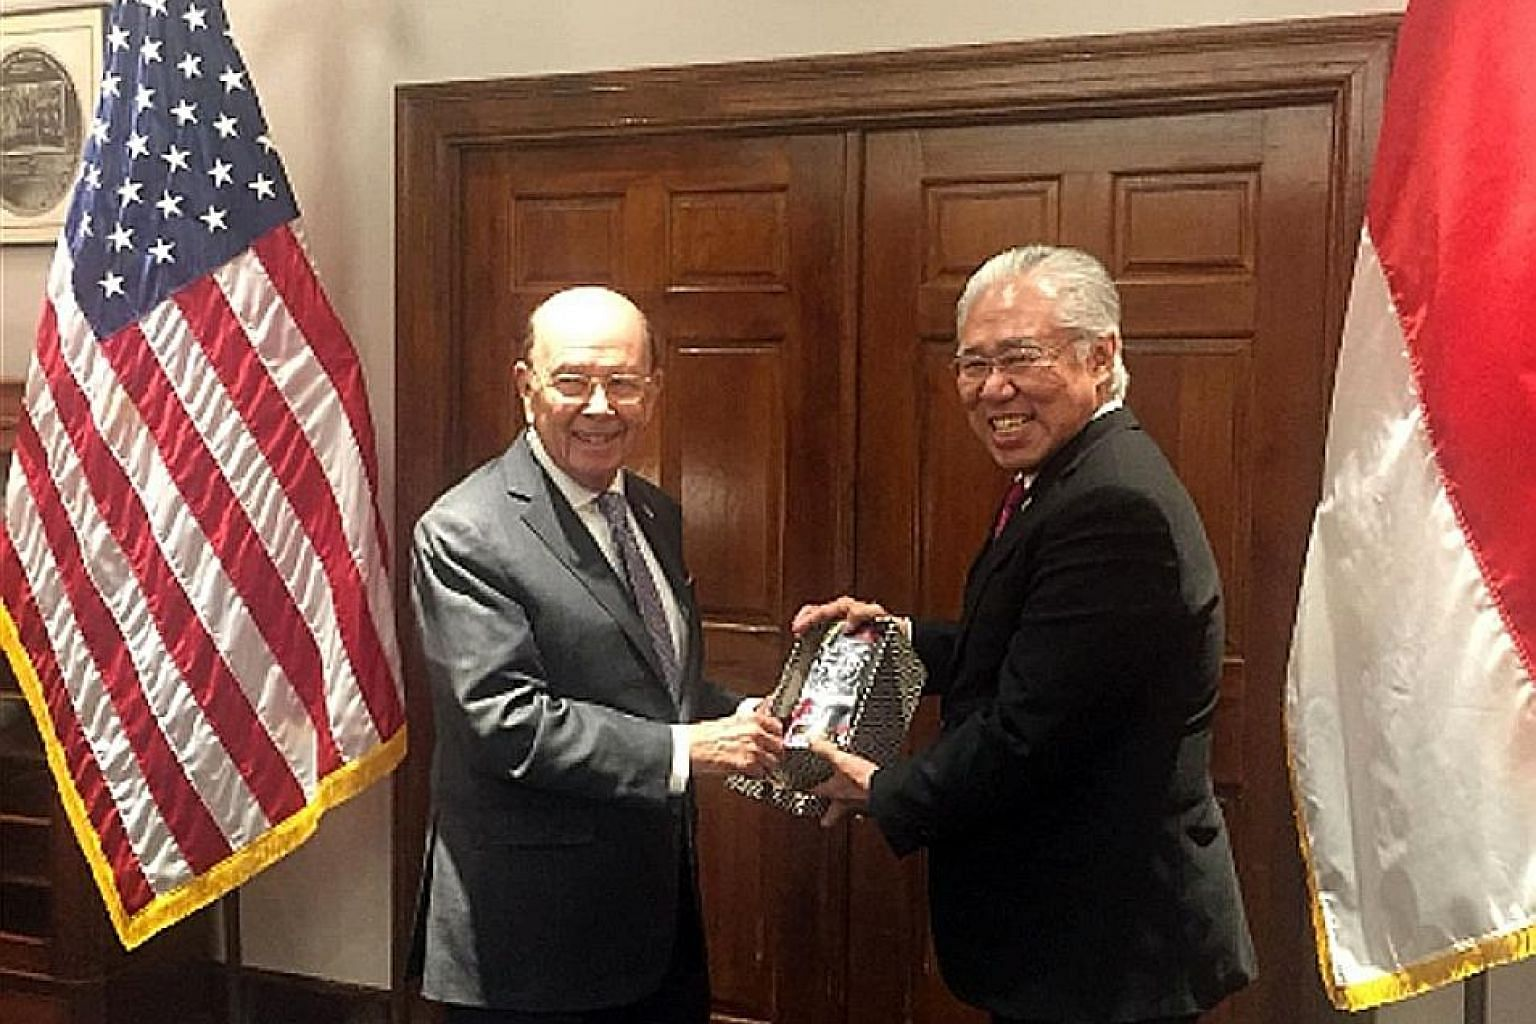 Indonesian Trade Minister Enggartiasto Lukita met US Secretary of Commerce Wilbur Ross in Washington this week.